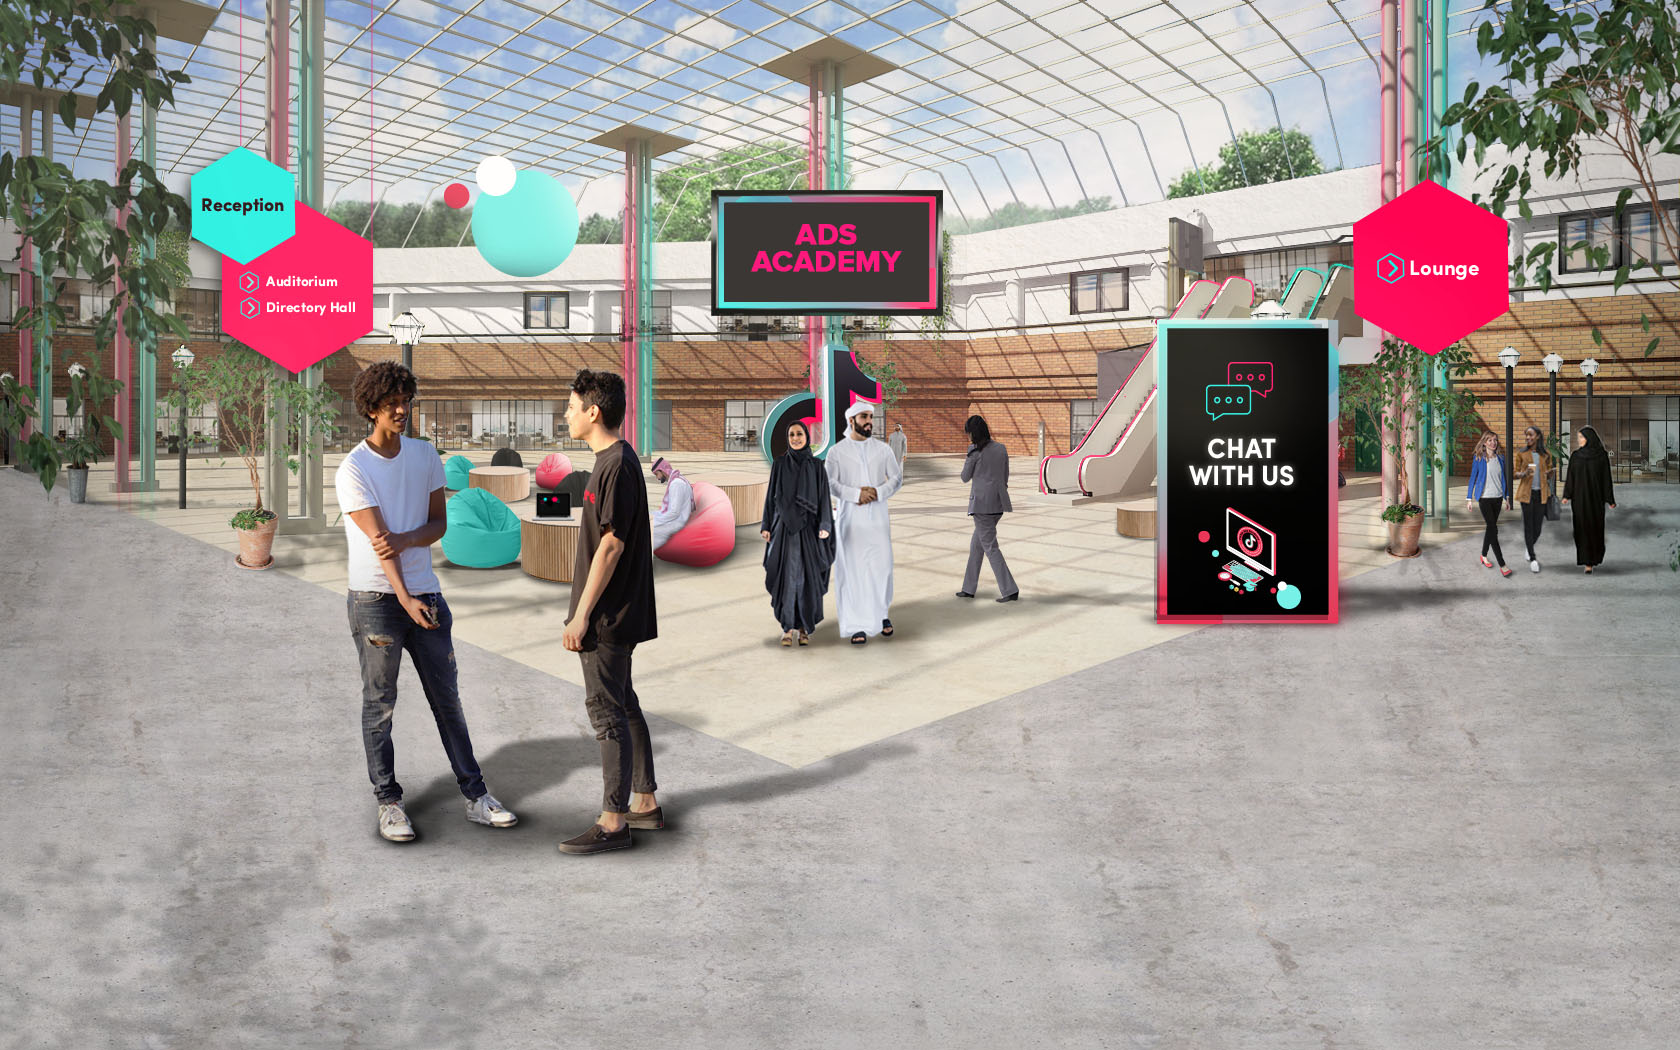 tiktok-for-business-launches-ads-academy-in-mena